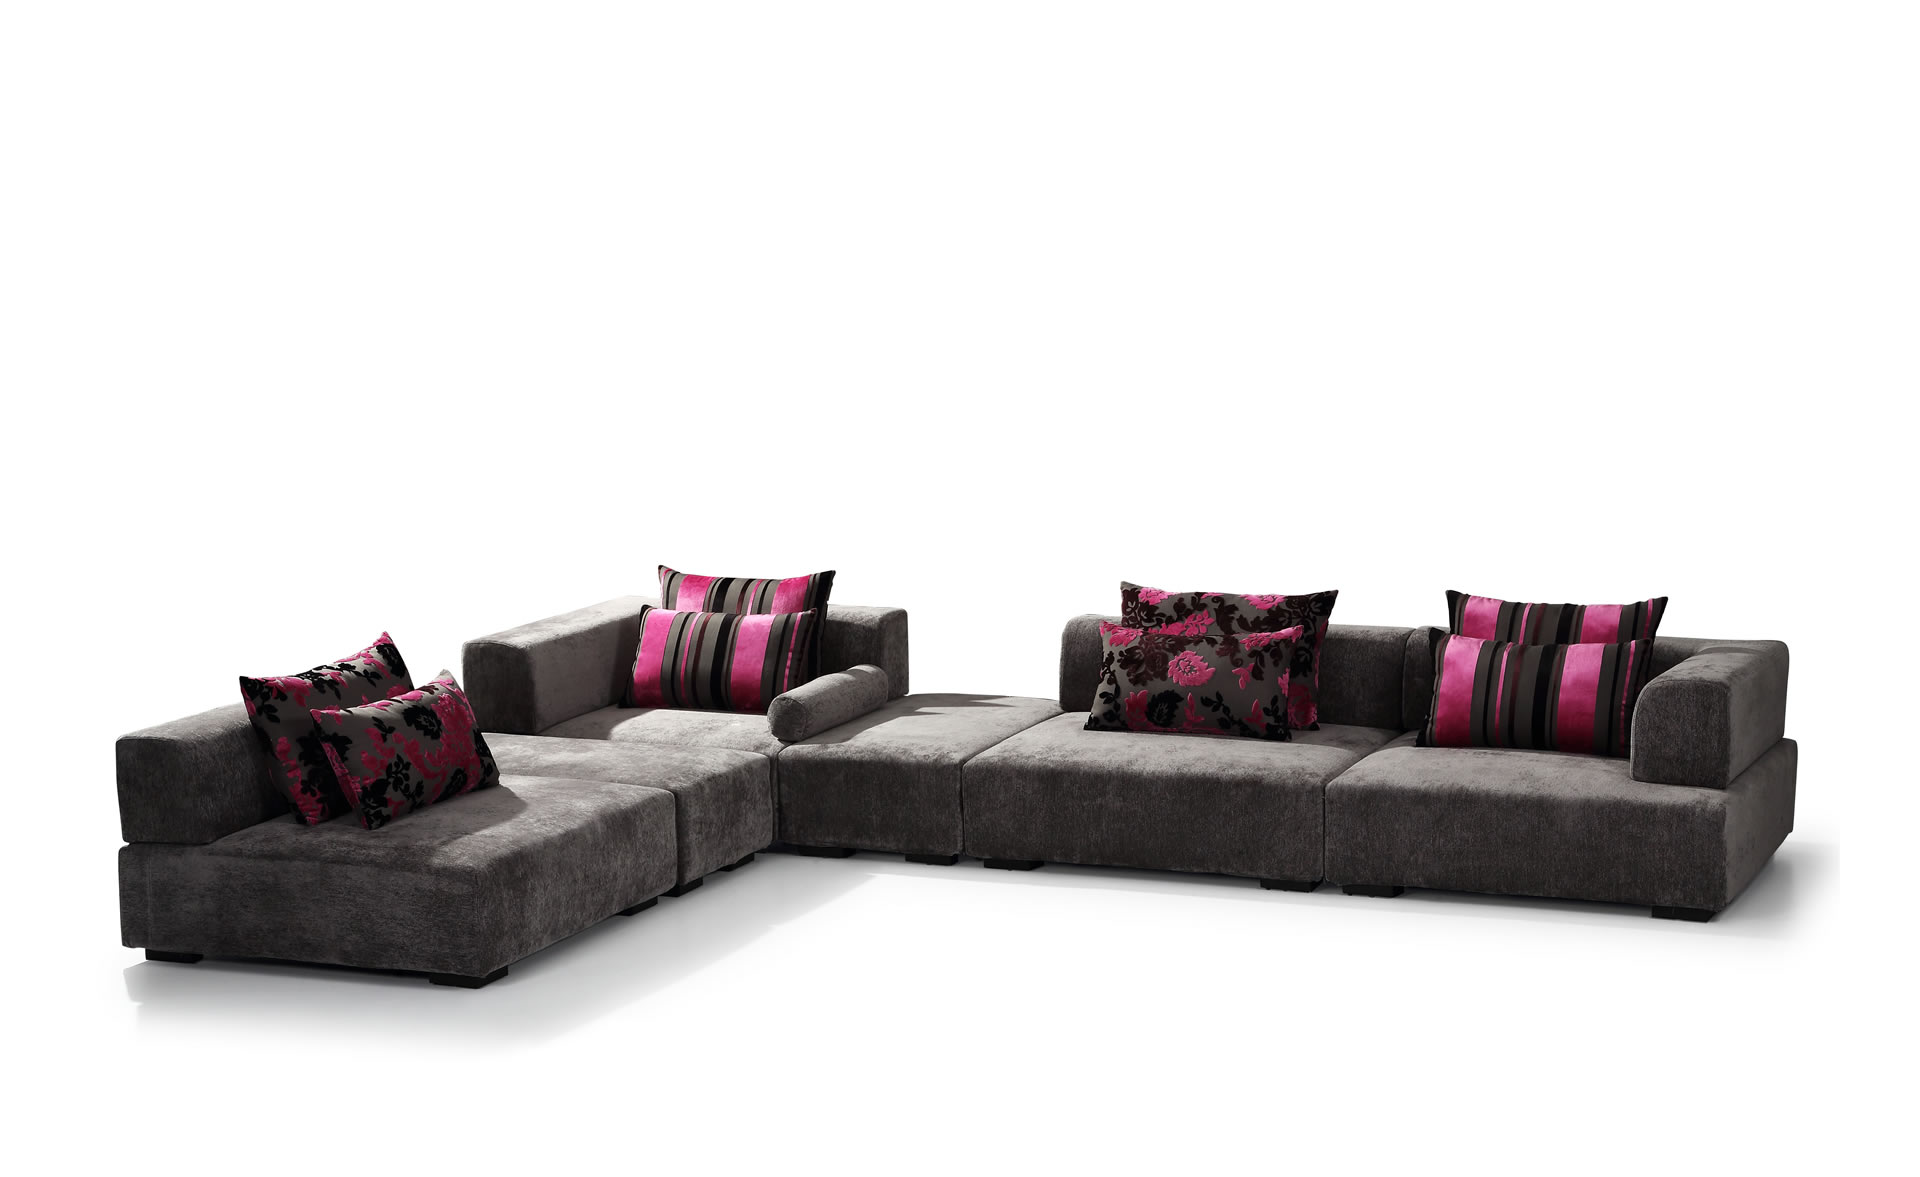 xxl wohnlandschaft alina designer sofa couch couchgarnitur eckgarnitur ecksofa ebay. Black Bedroom Furniture Sets. Home Design Ideas